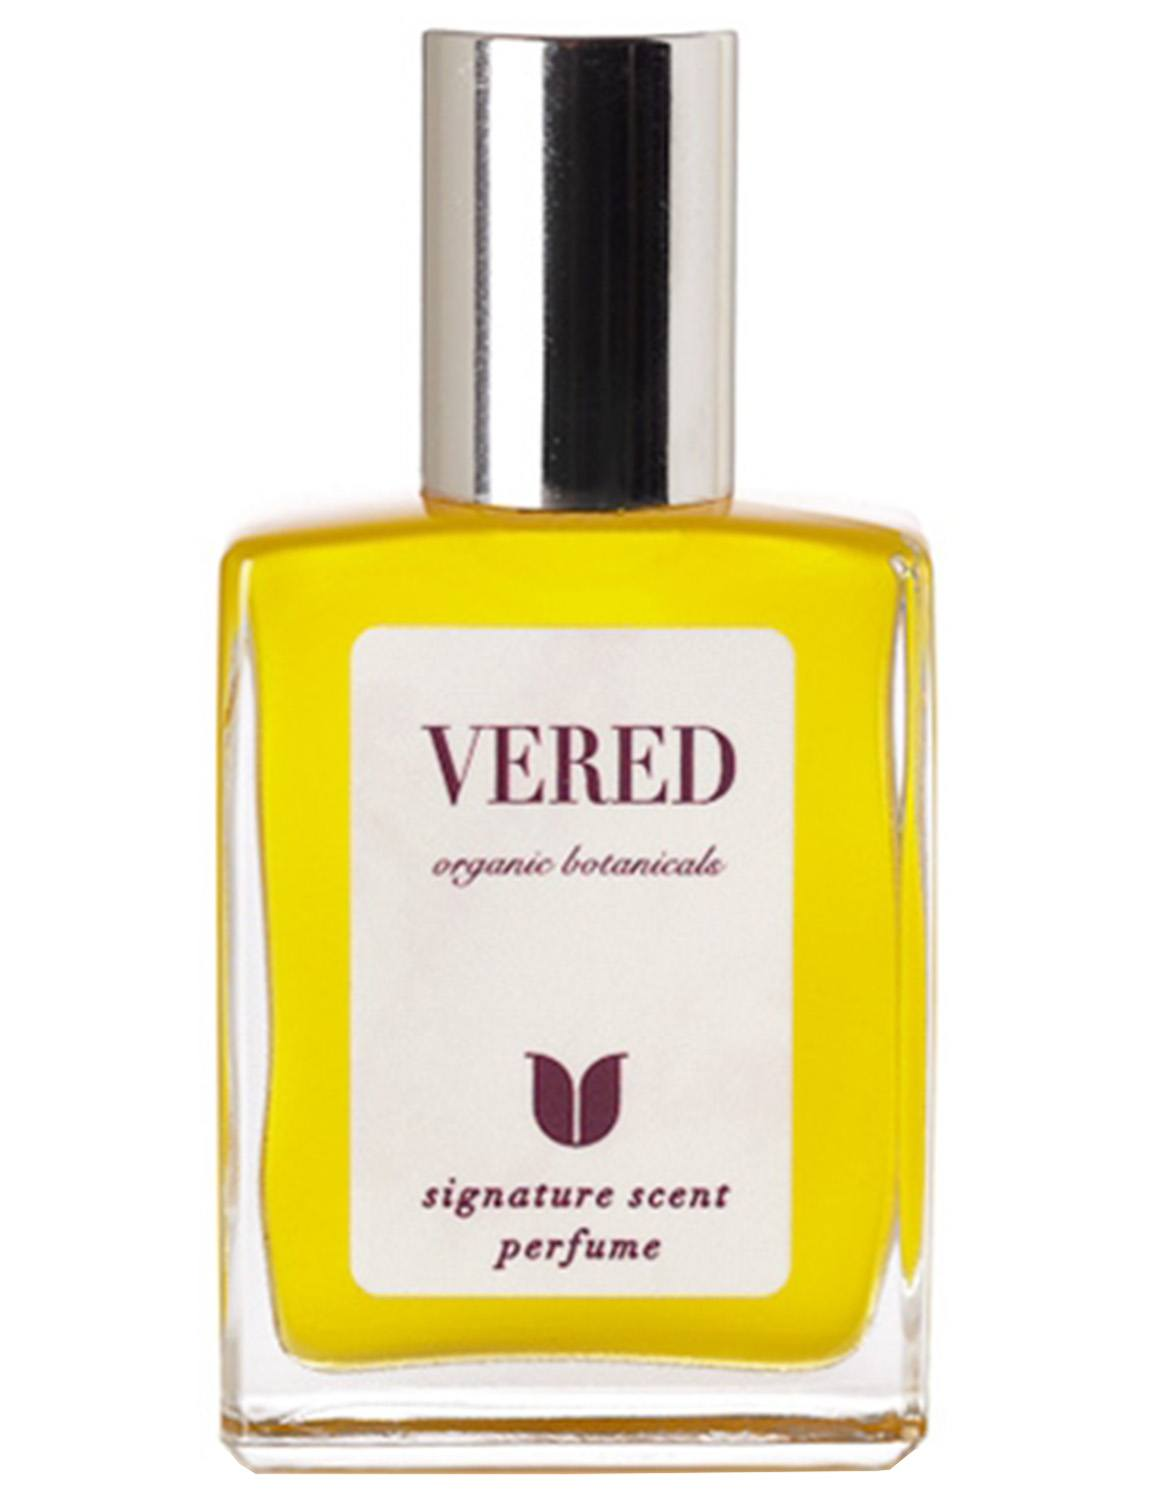 VERED Organic Botanicals